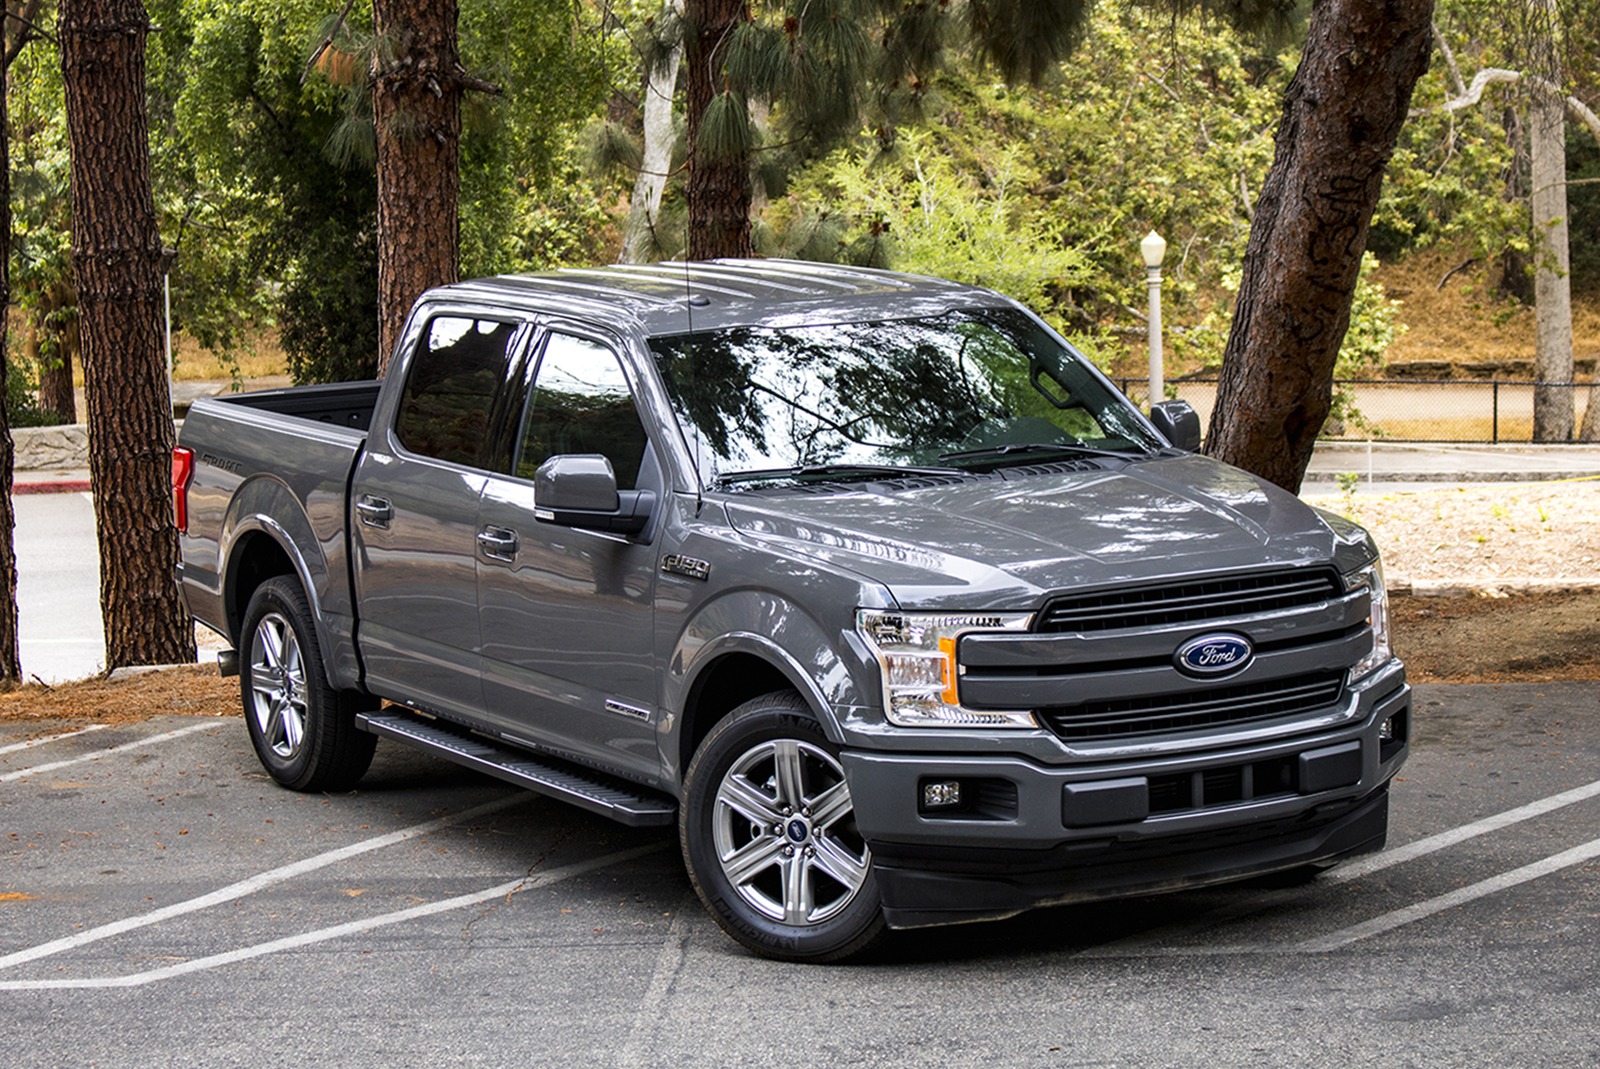 2018 Ford F 150 Diesel Review How Does 850 Miles On A Single Tank Sound